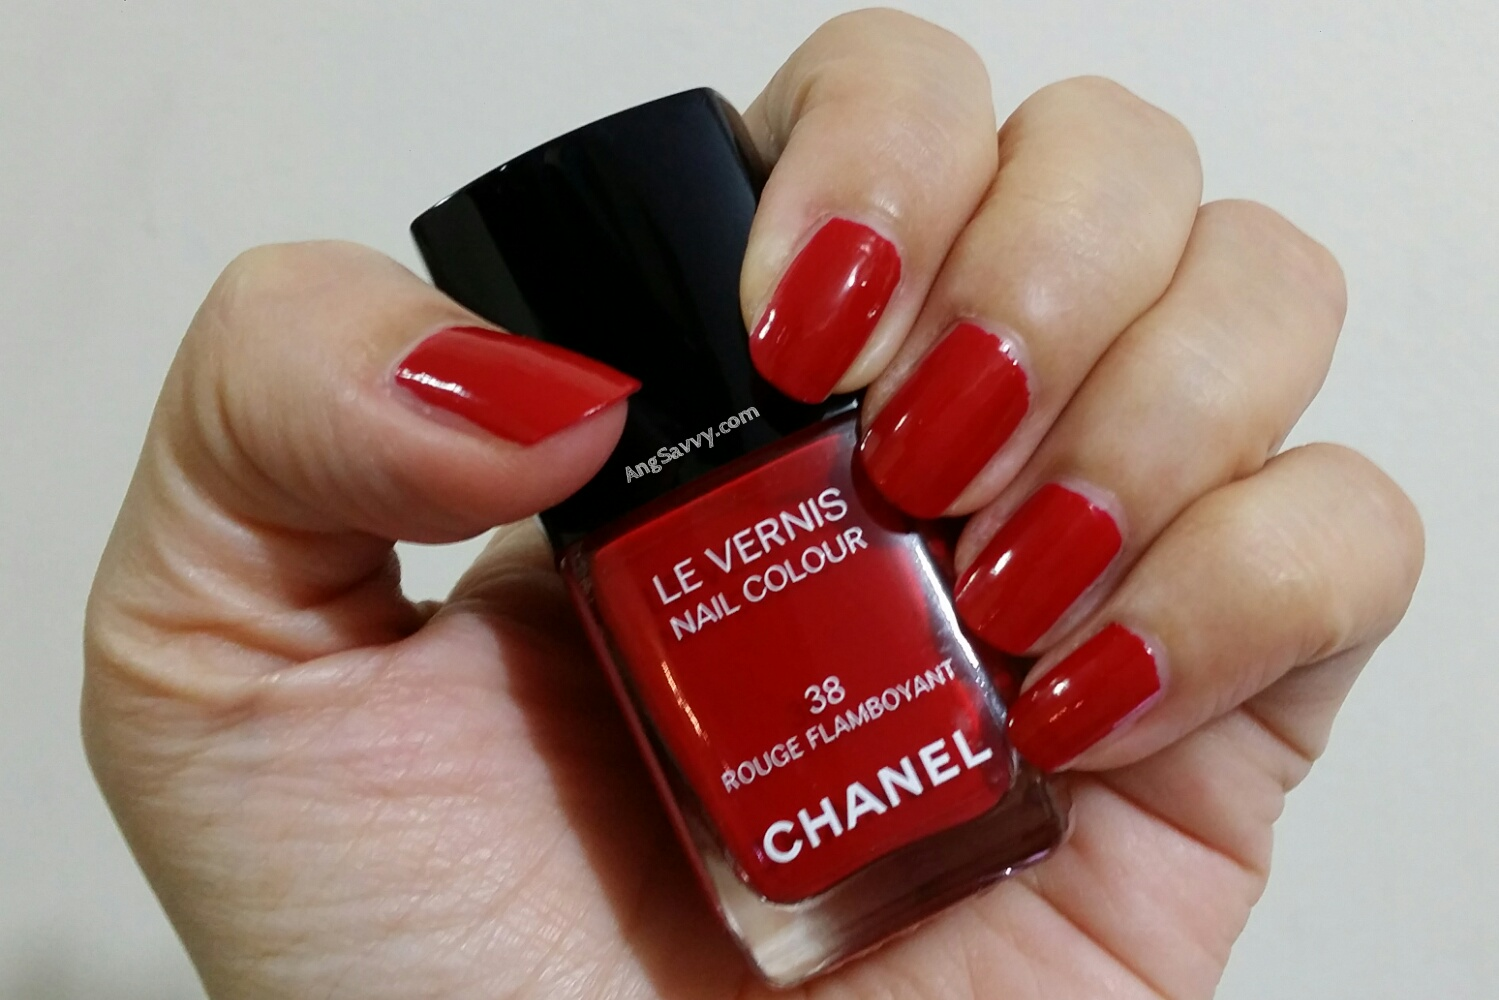 Chanel Rouge Flamboyant (38) Le Vernis Swatch